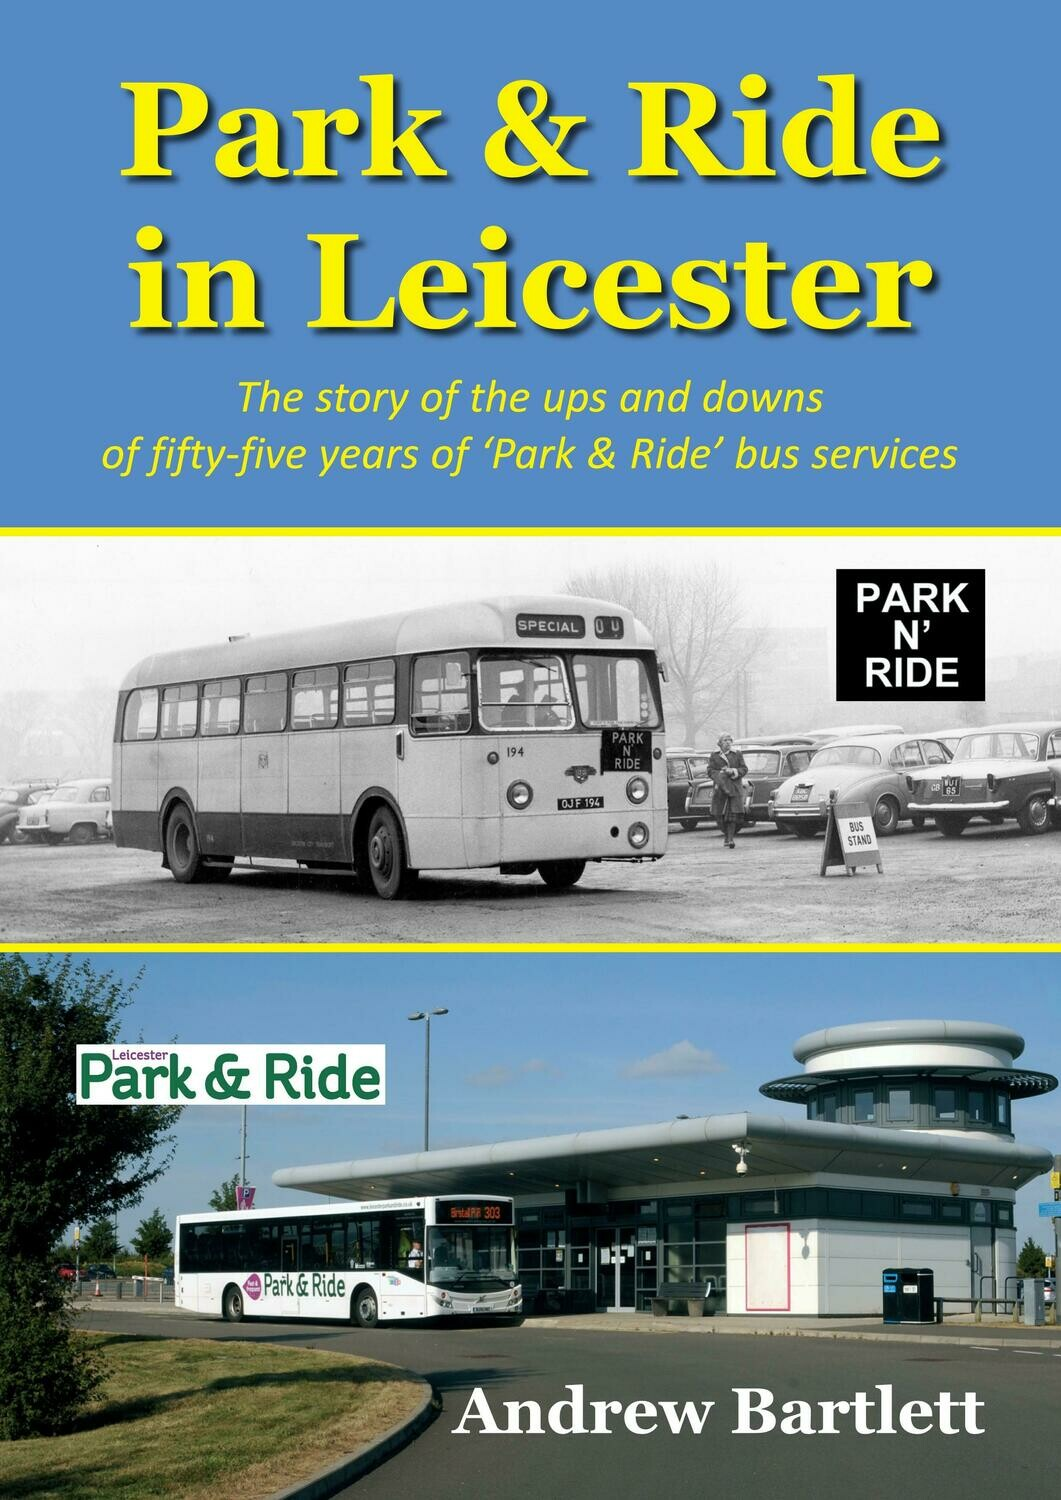 Park & Ride in Leicester